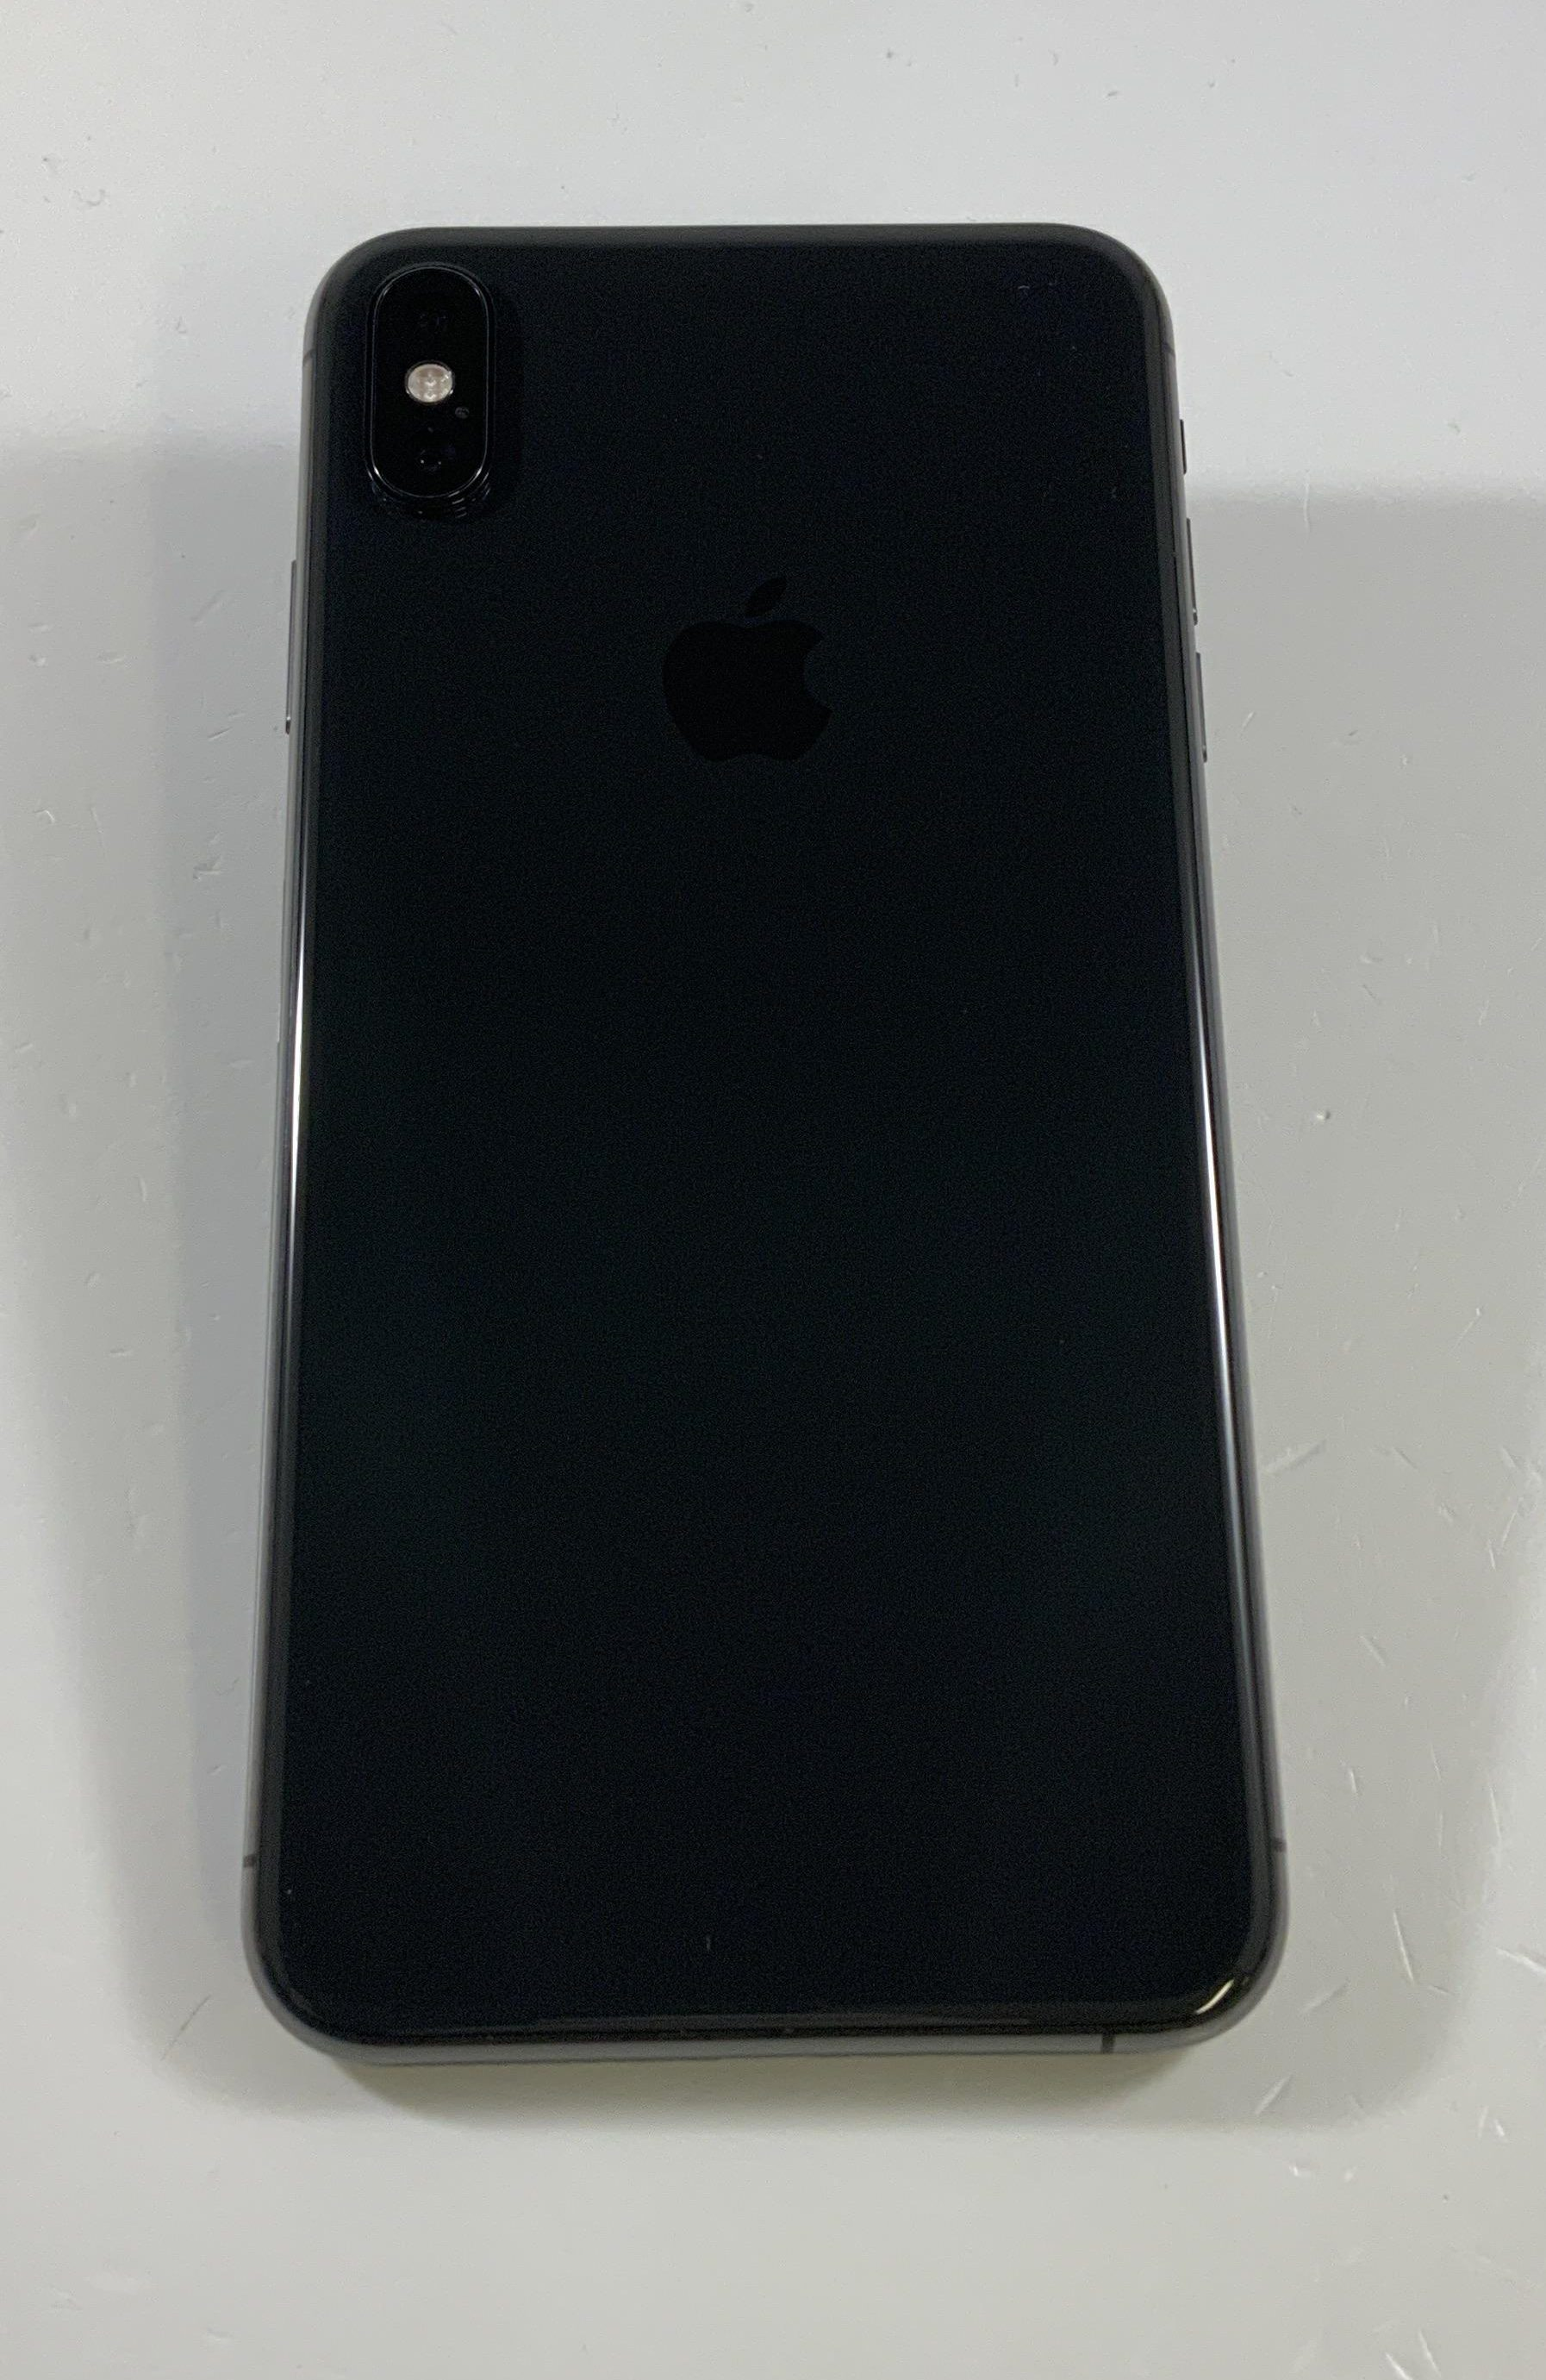 iPhone XS Max 256GB, 256GB, Space Gray, imagen 2